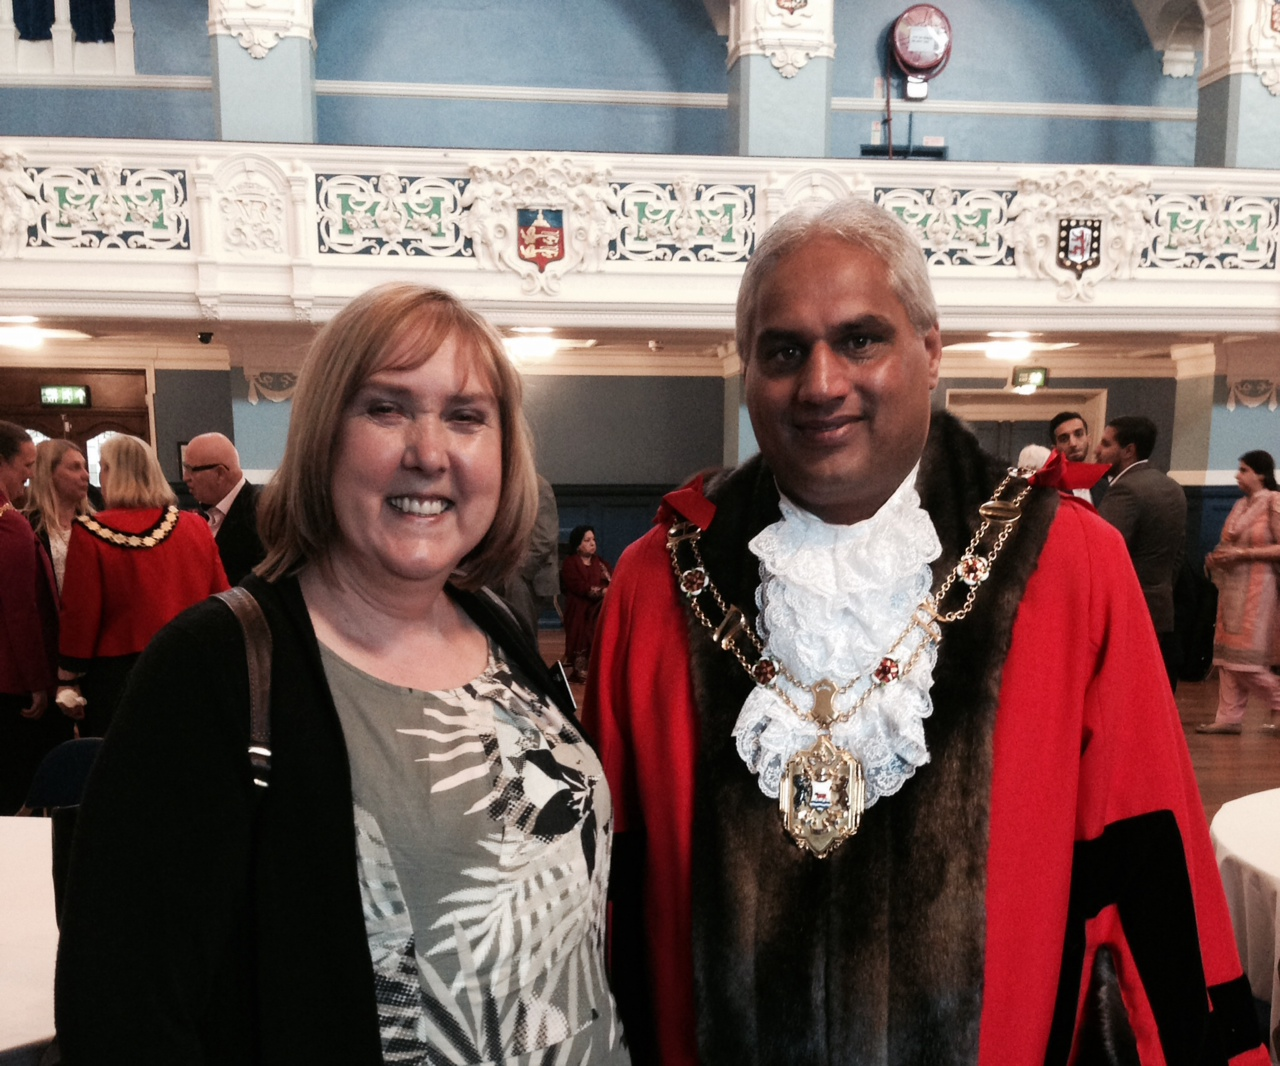 Ruth congratulates Altaf on becoming Lord Mayor of Oxford on 16th May